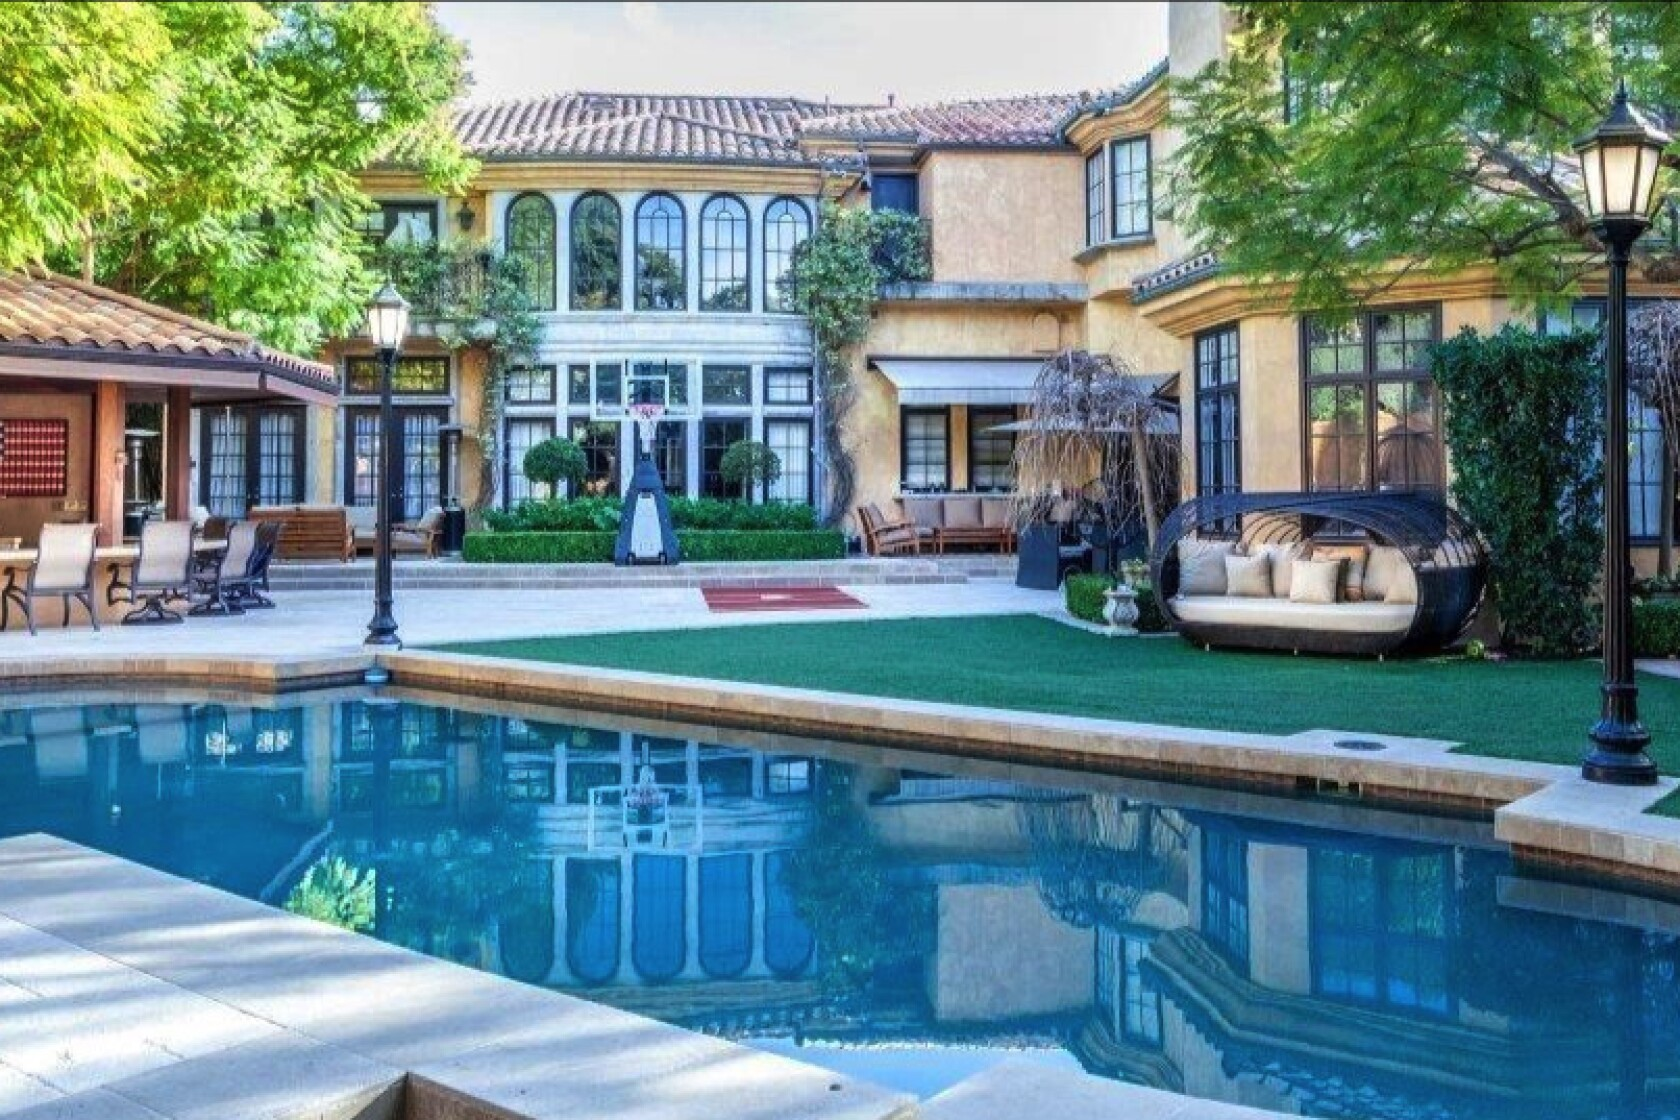 After avoiding foreclosure, Charlie Sheen relists Sherman Oaks